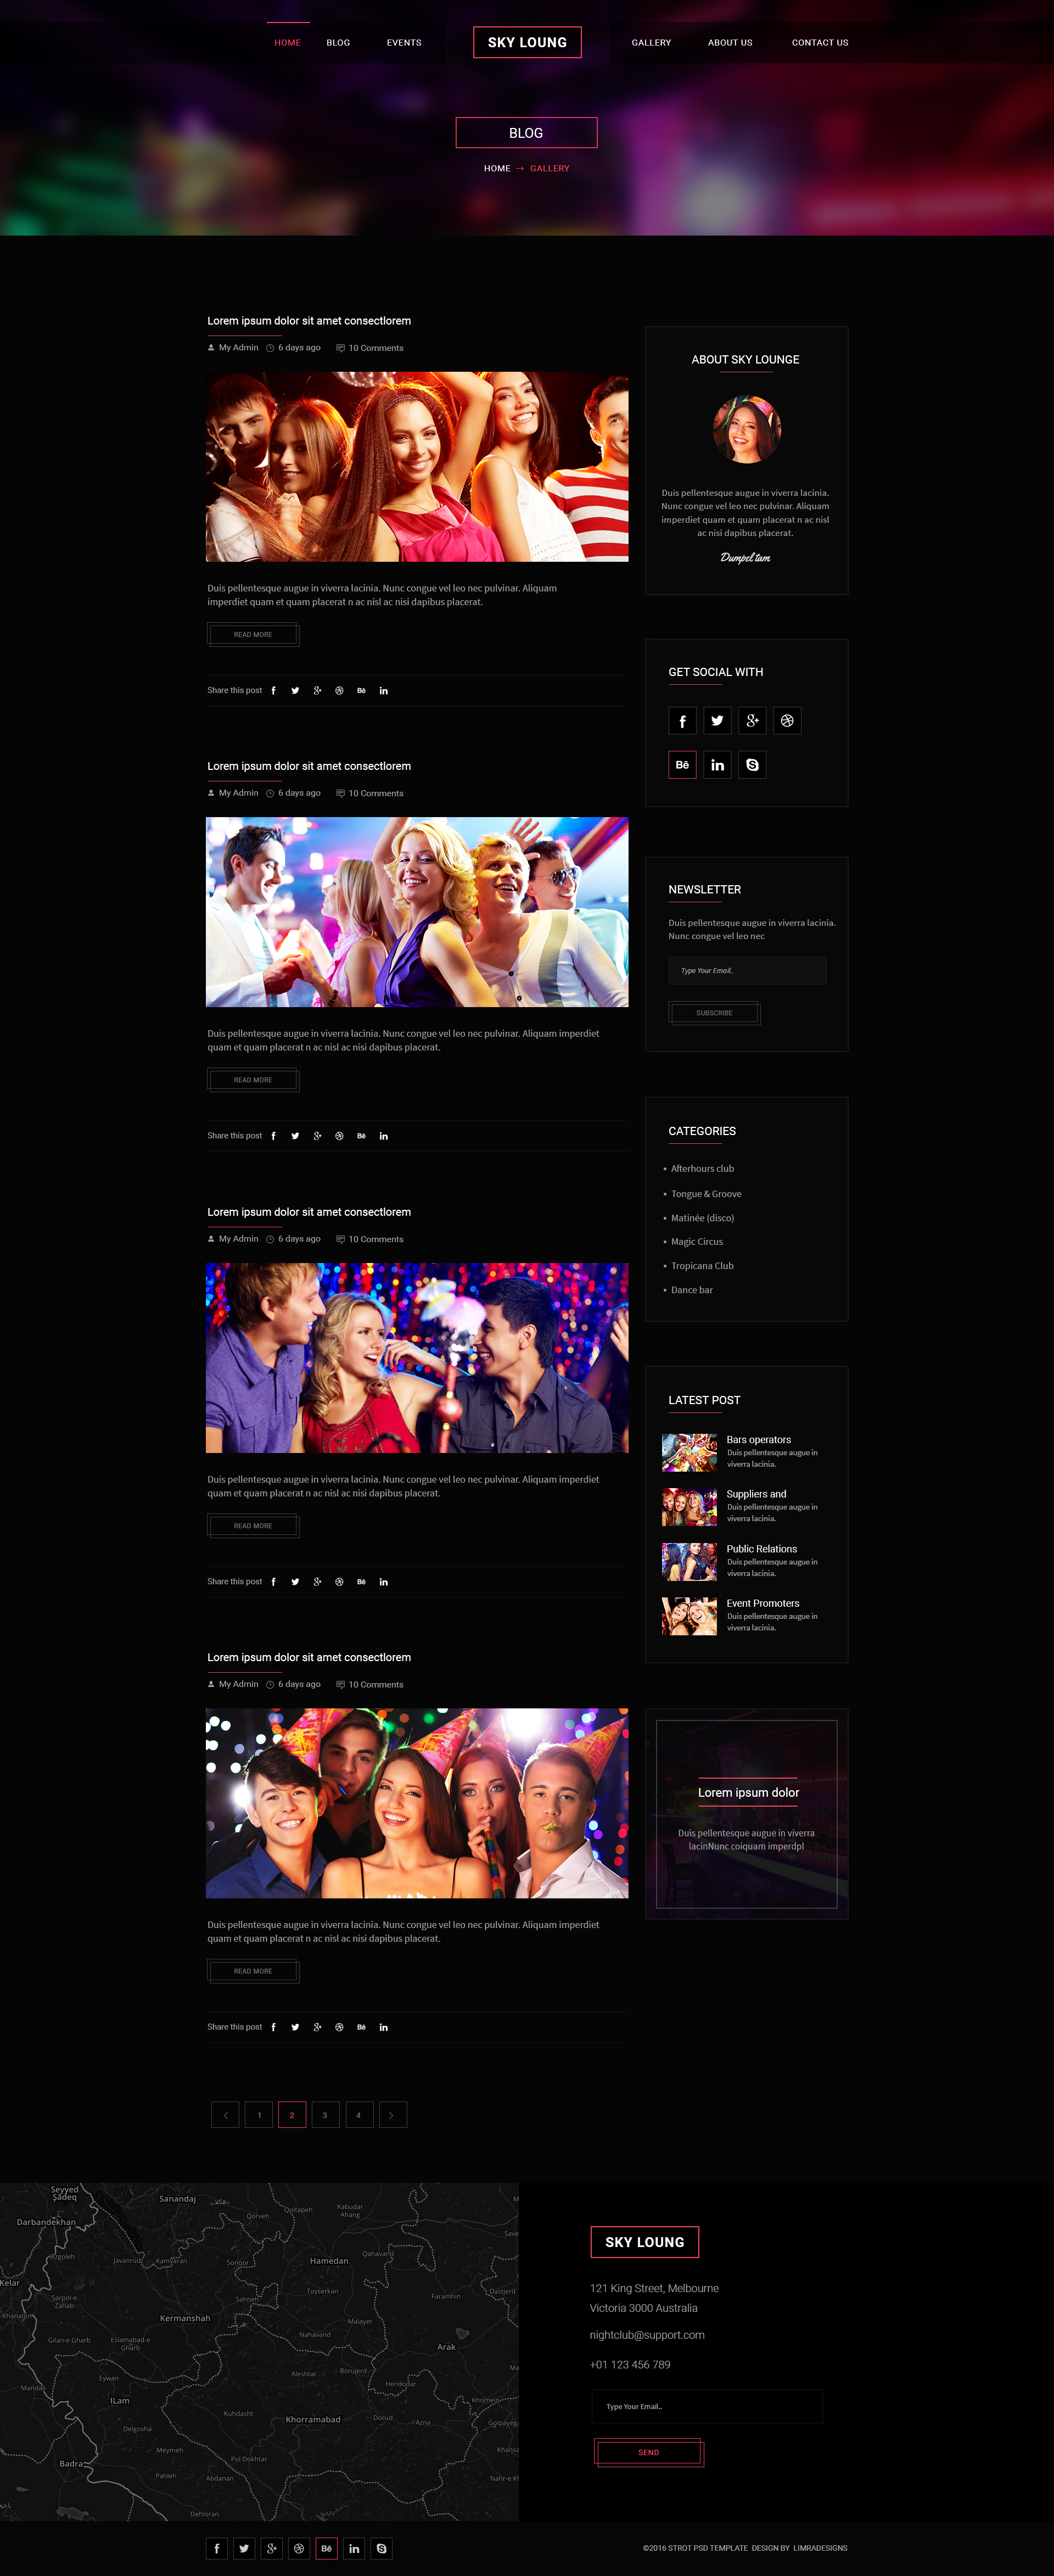 Sky Loung - Event, DJ, Party, Music Club PSD Template by limradesigns